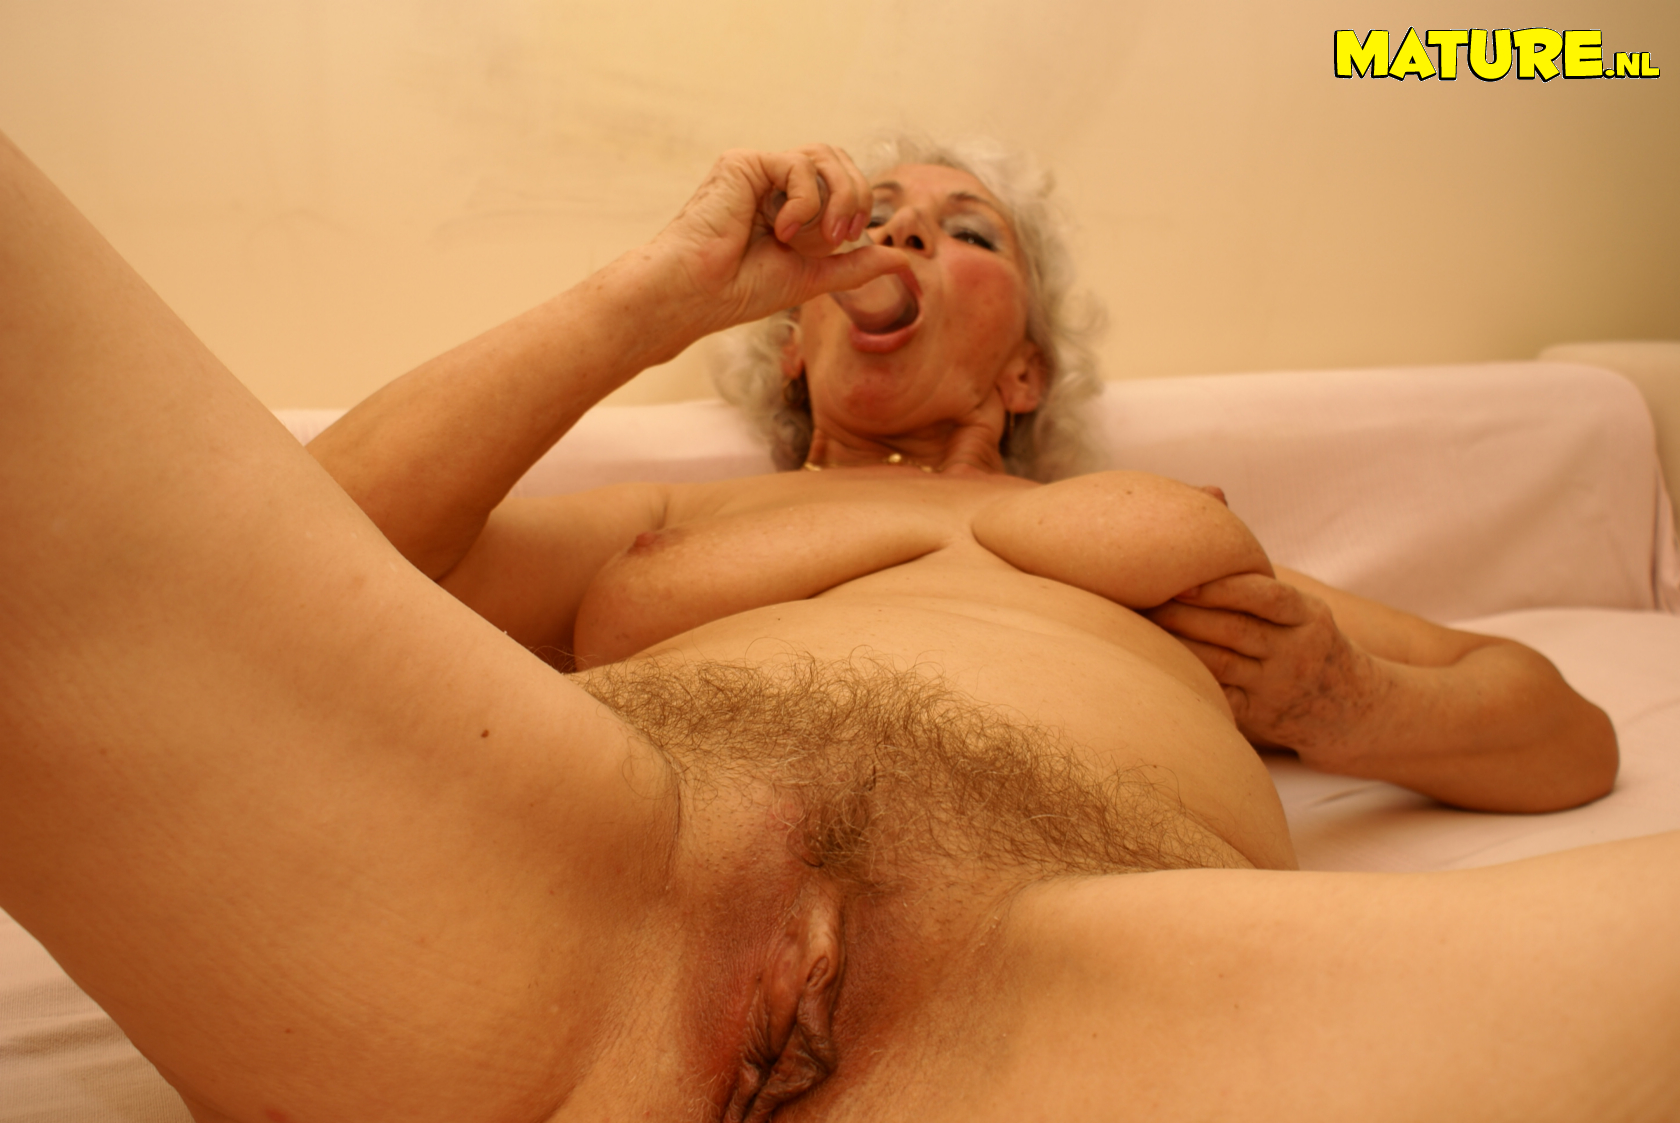 grandma loves playing with her wet pussy